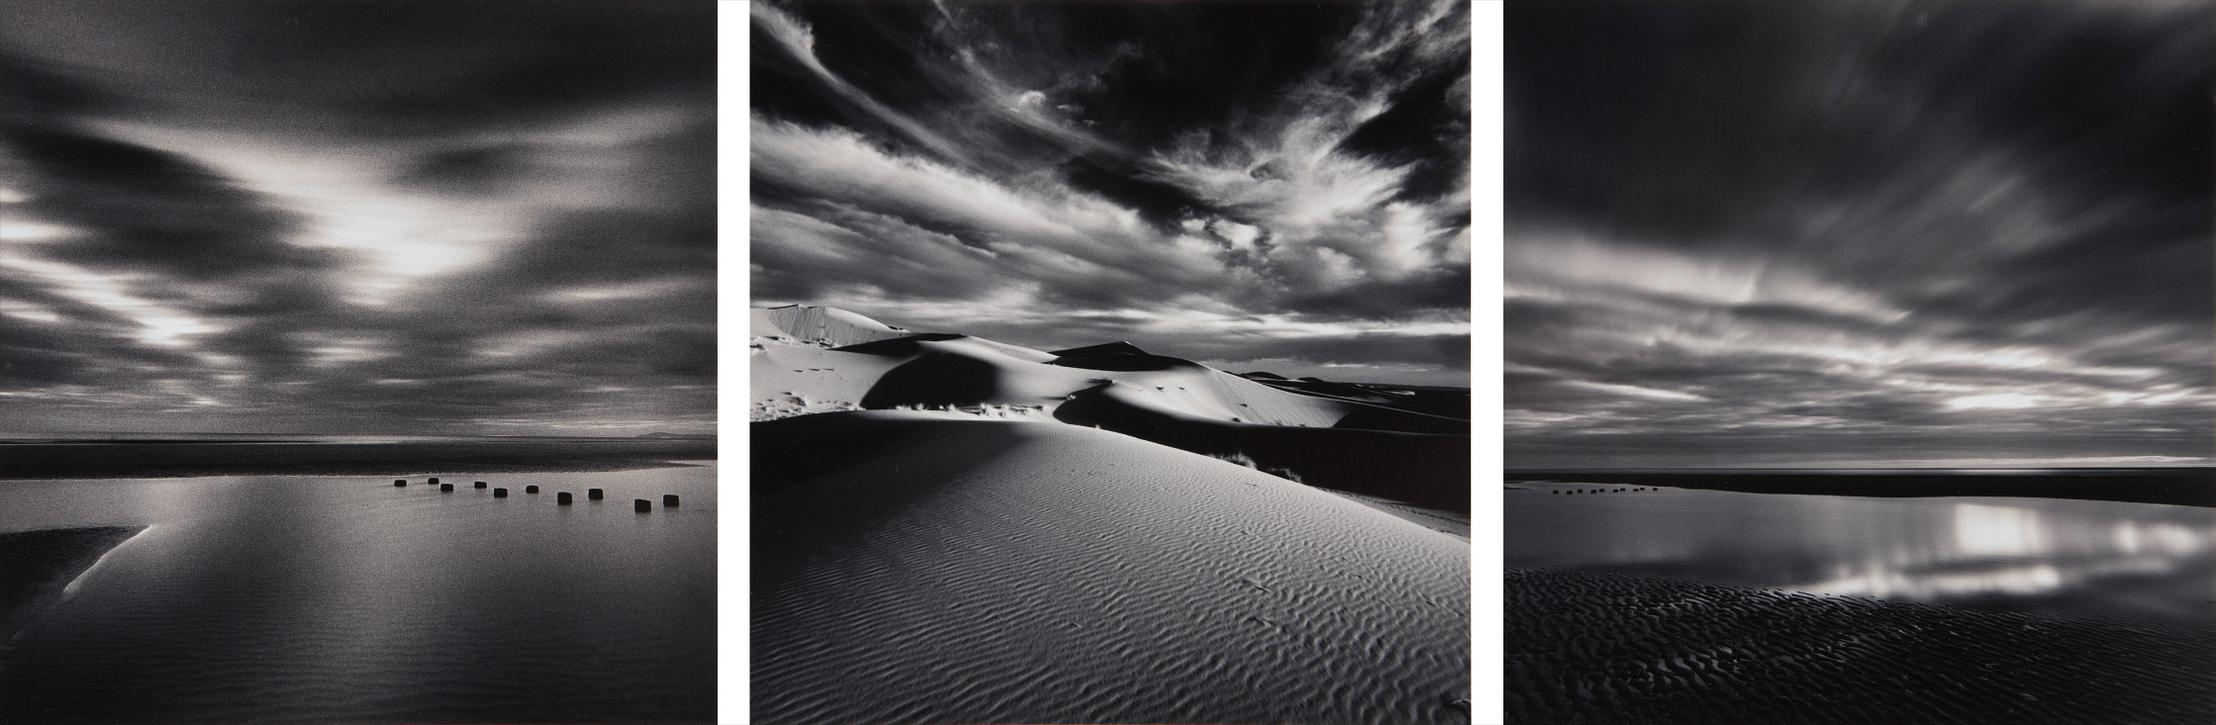 Michael Kenna-Selected Images-1996